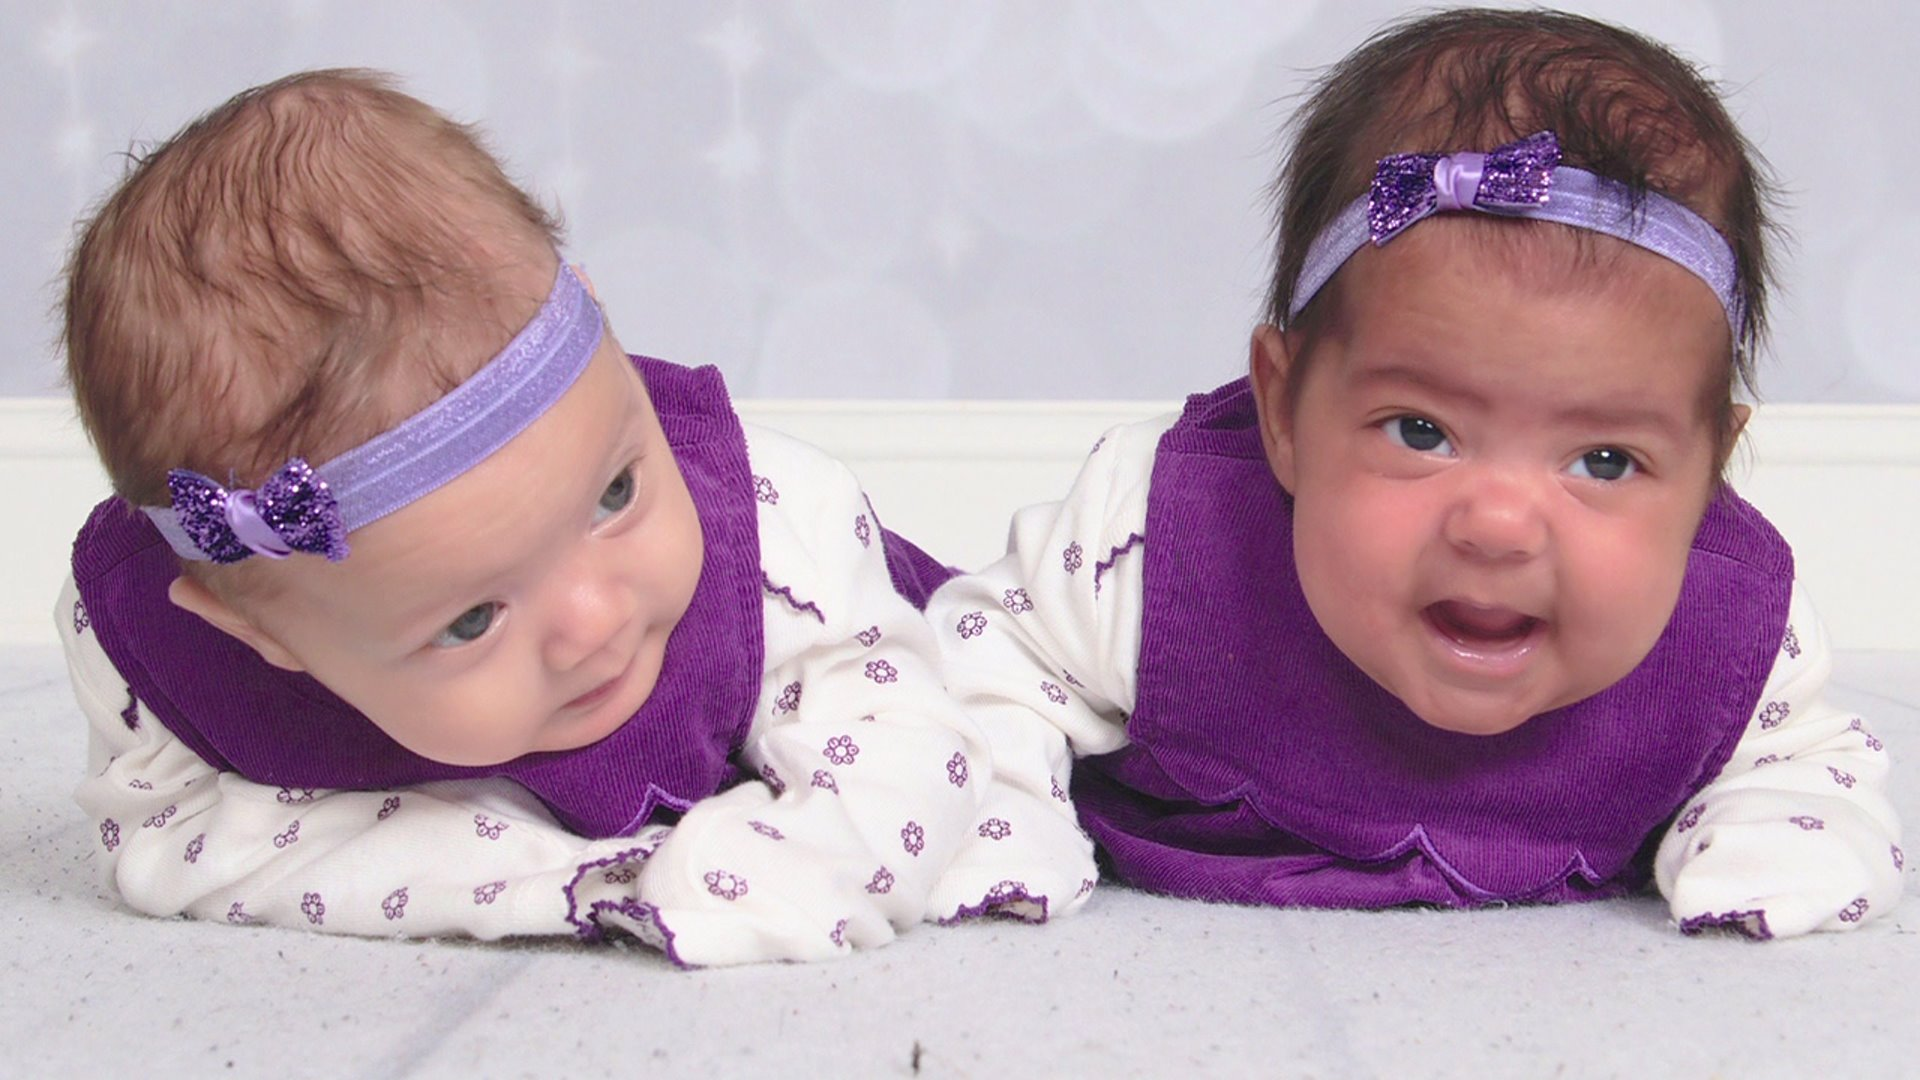 Twins Born With Different Skin Tones